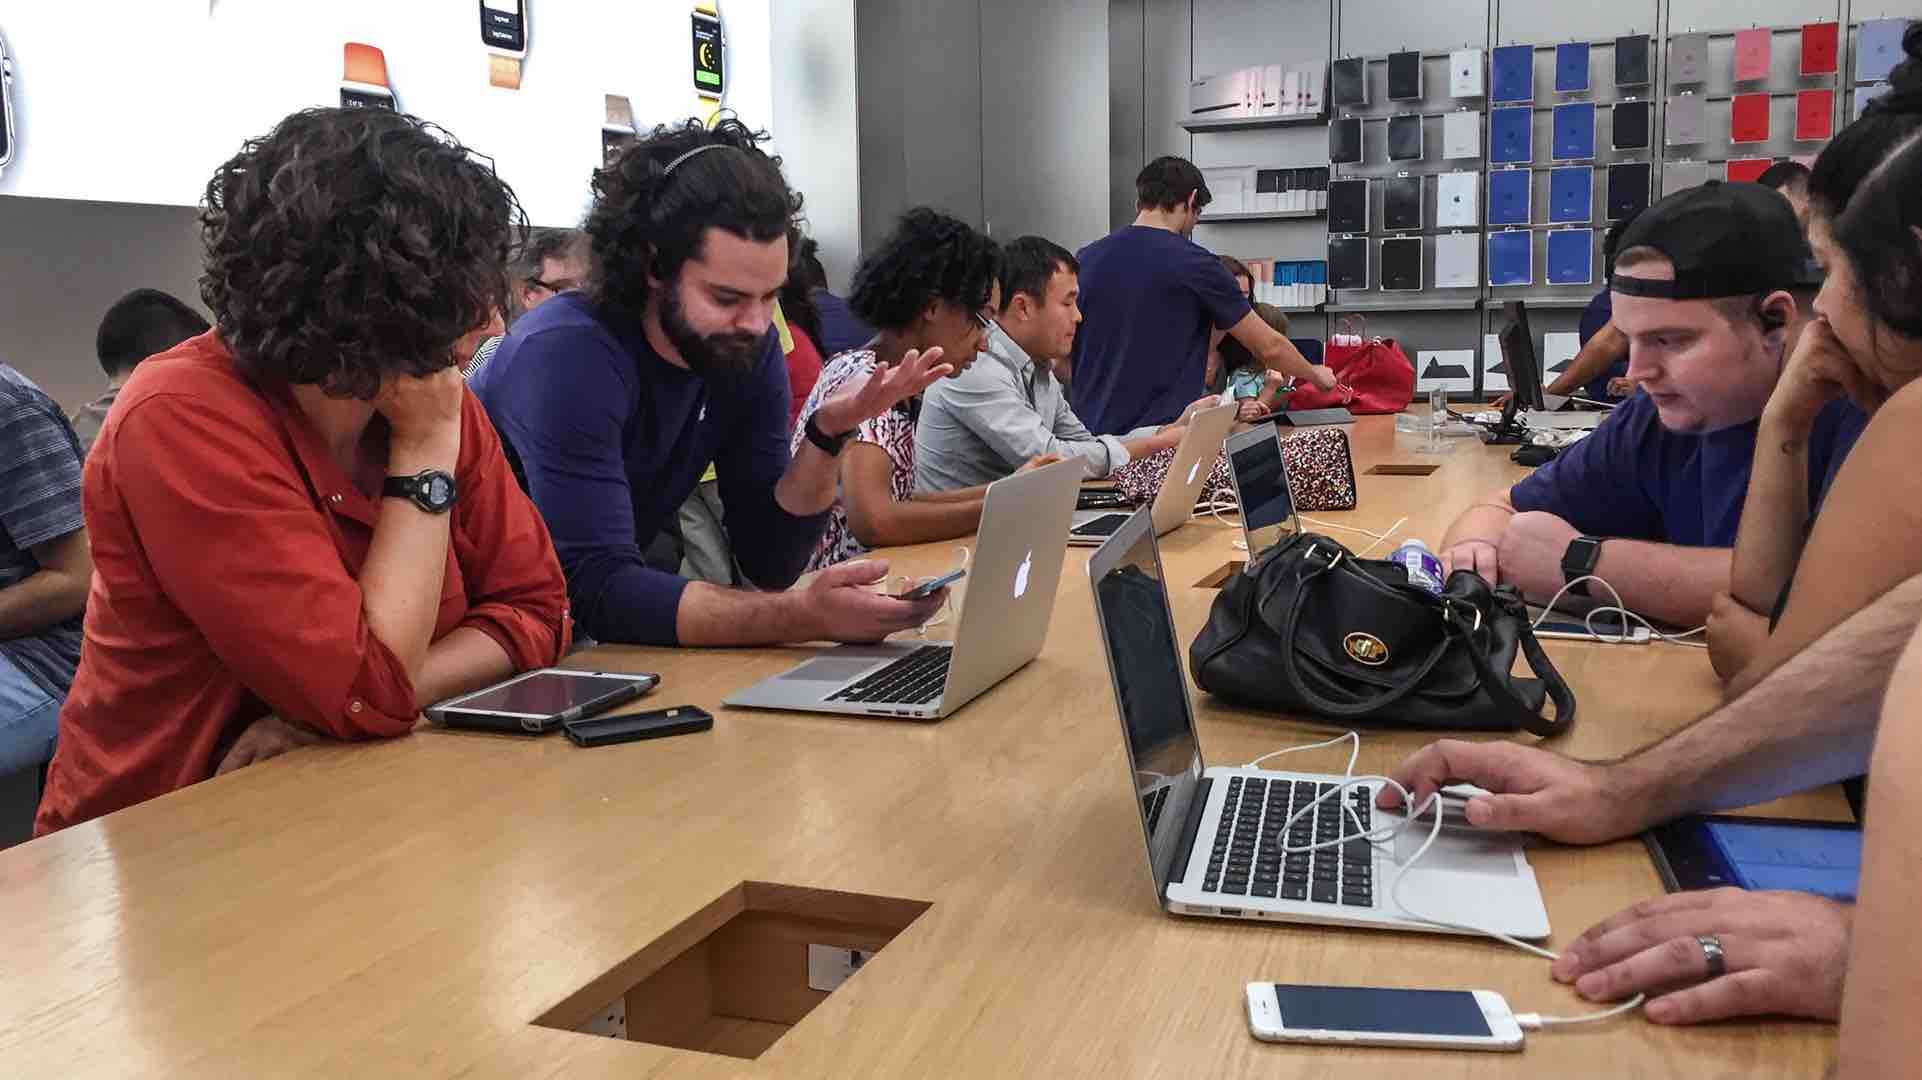 Apple Store employees helping customers with devices